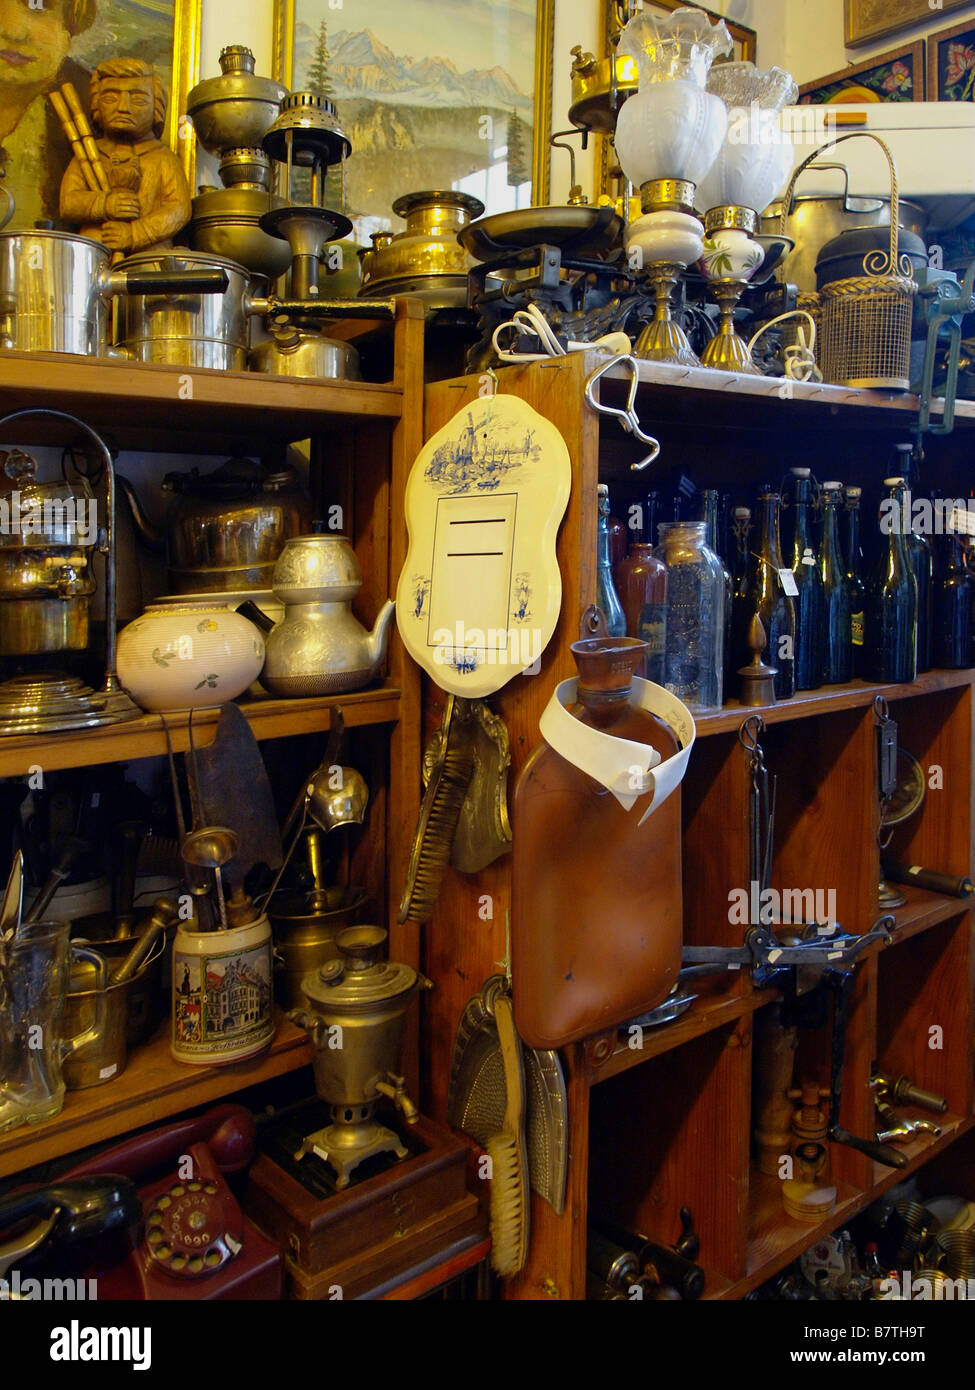 Antique lamps, kitchen items, and other decor on sale at an antiques ...